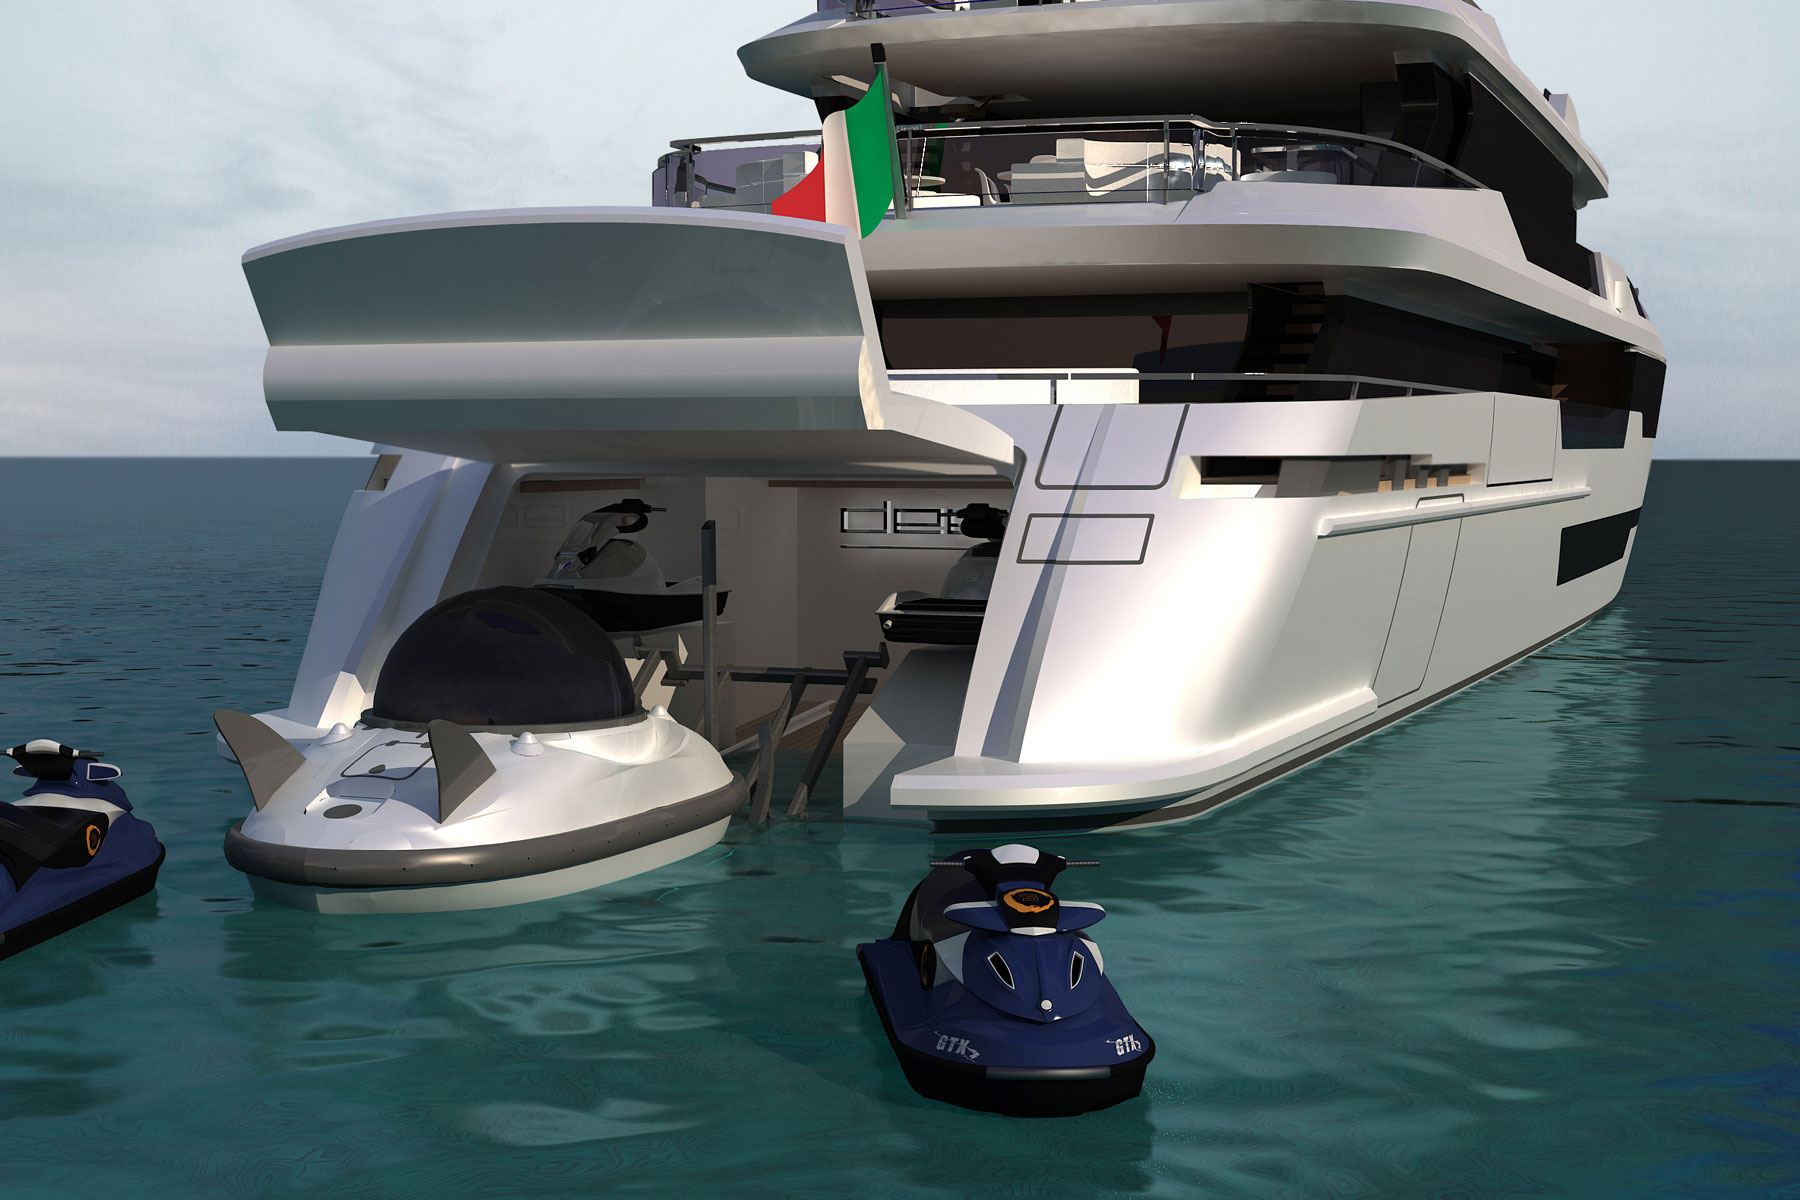 Deep 51 Yacht Project And Her Water Toys Image Courtesy